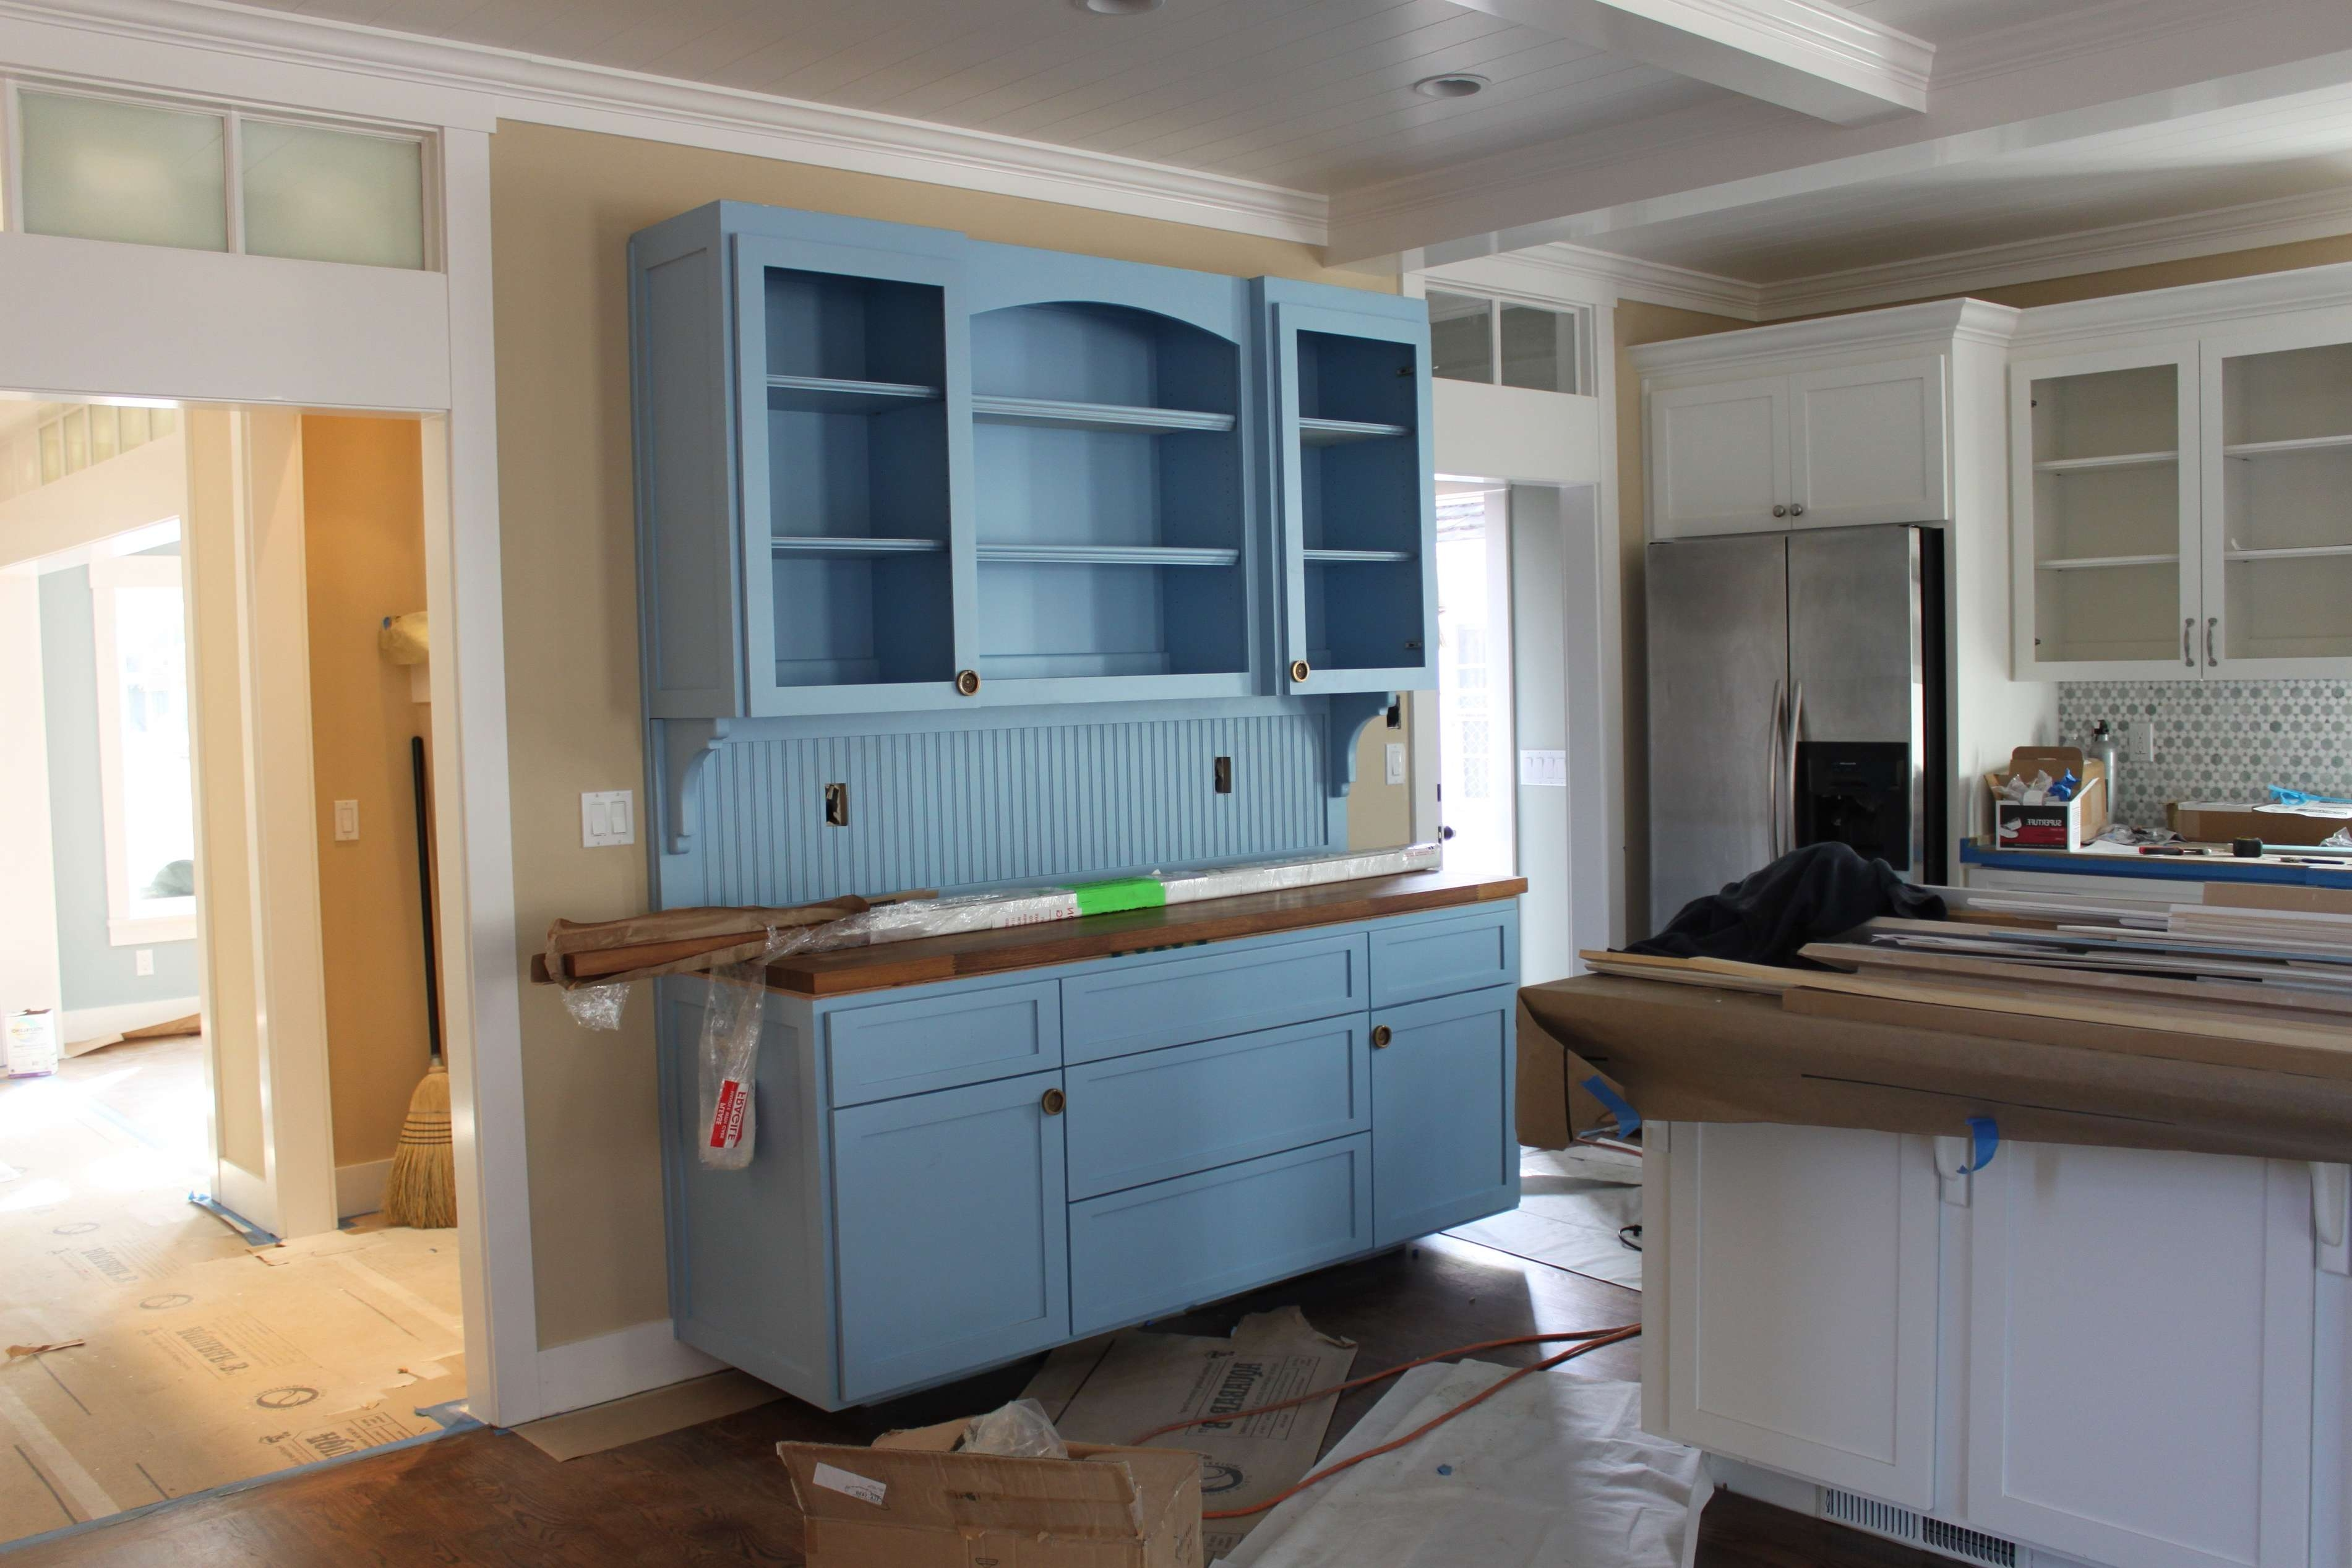 Kitchen Cabinet : Kitchen Cabinets Kitchen Sideboard Buffet With For Cheap Sideboards Cabinets (Gallery 12 of 20)